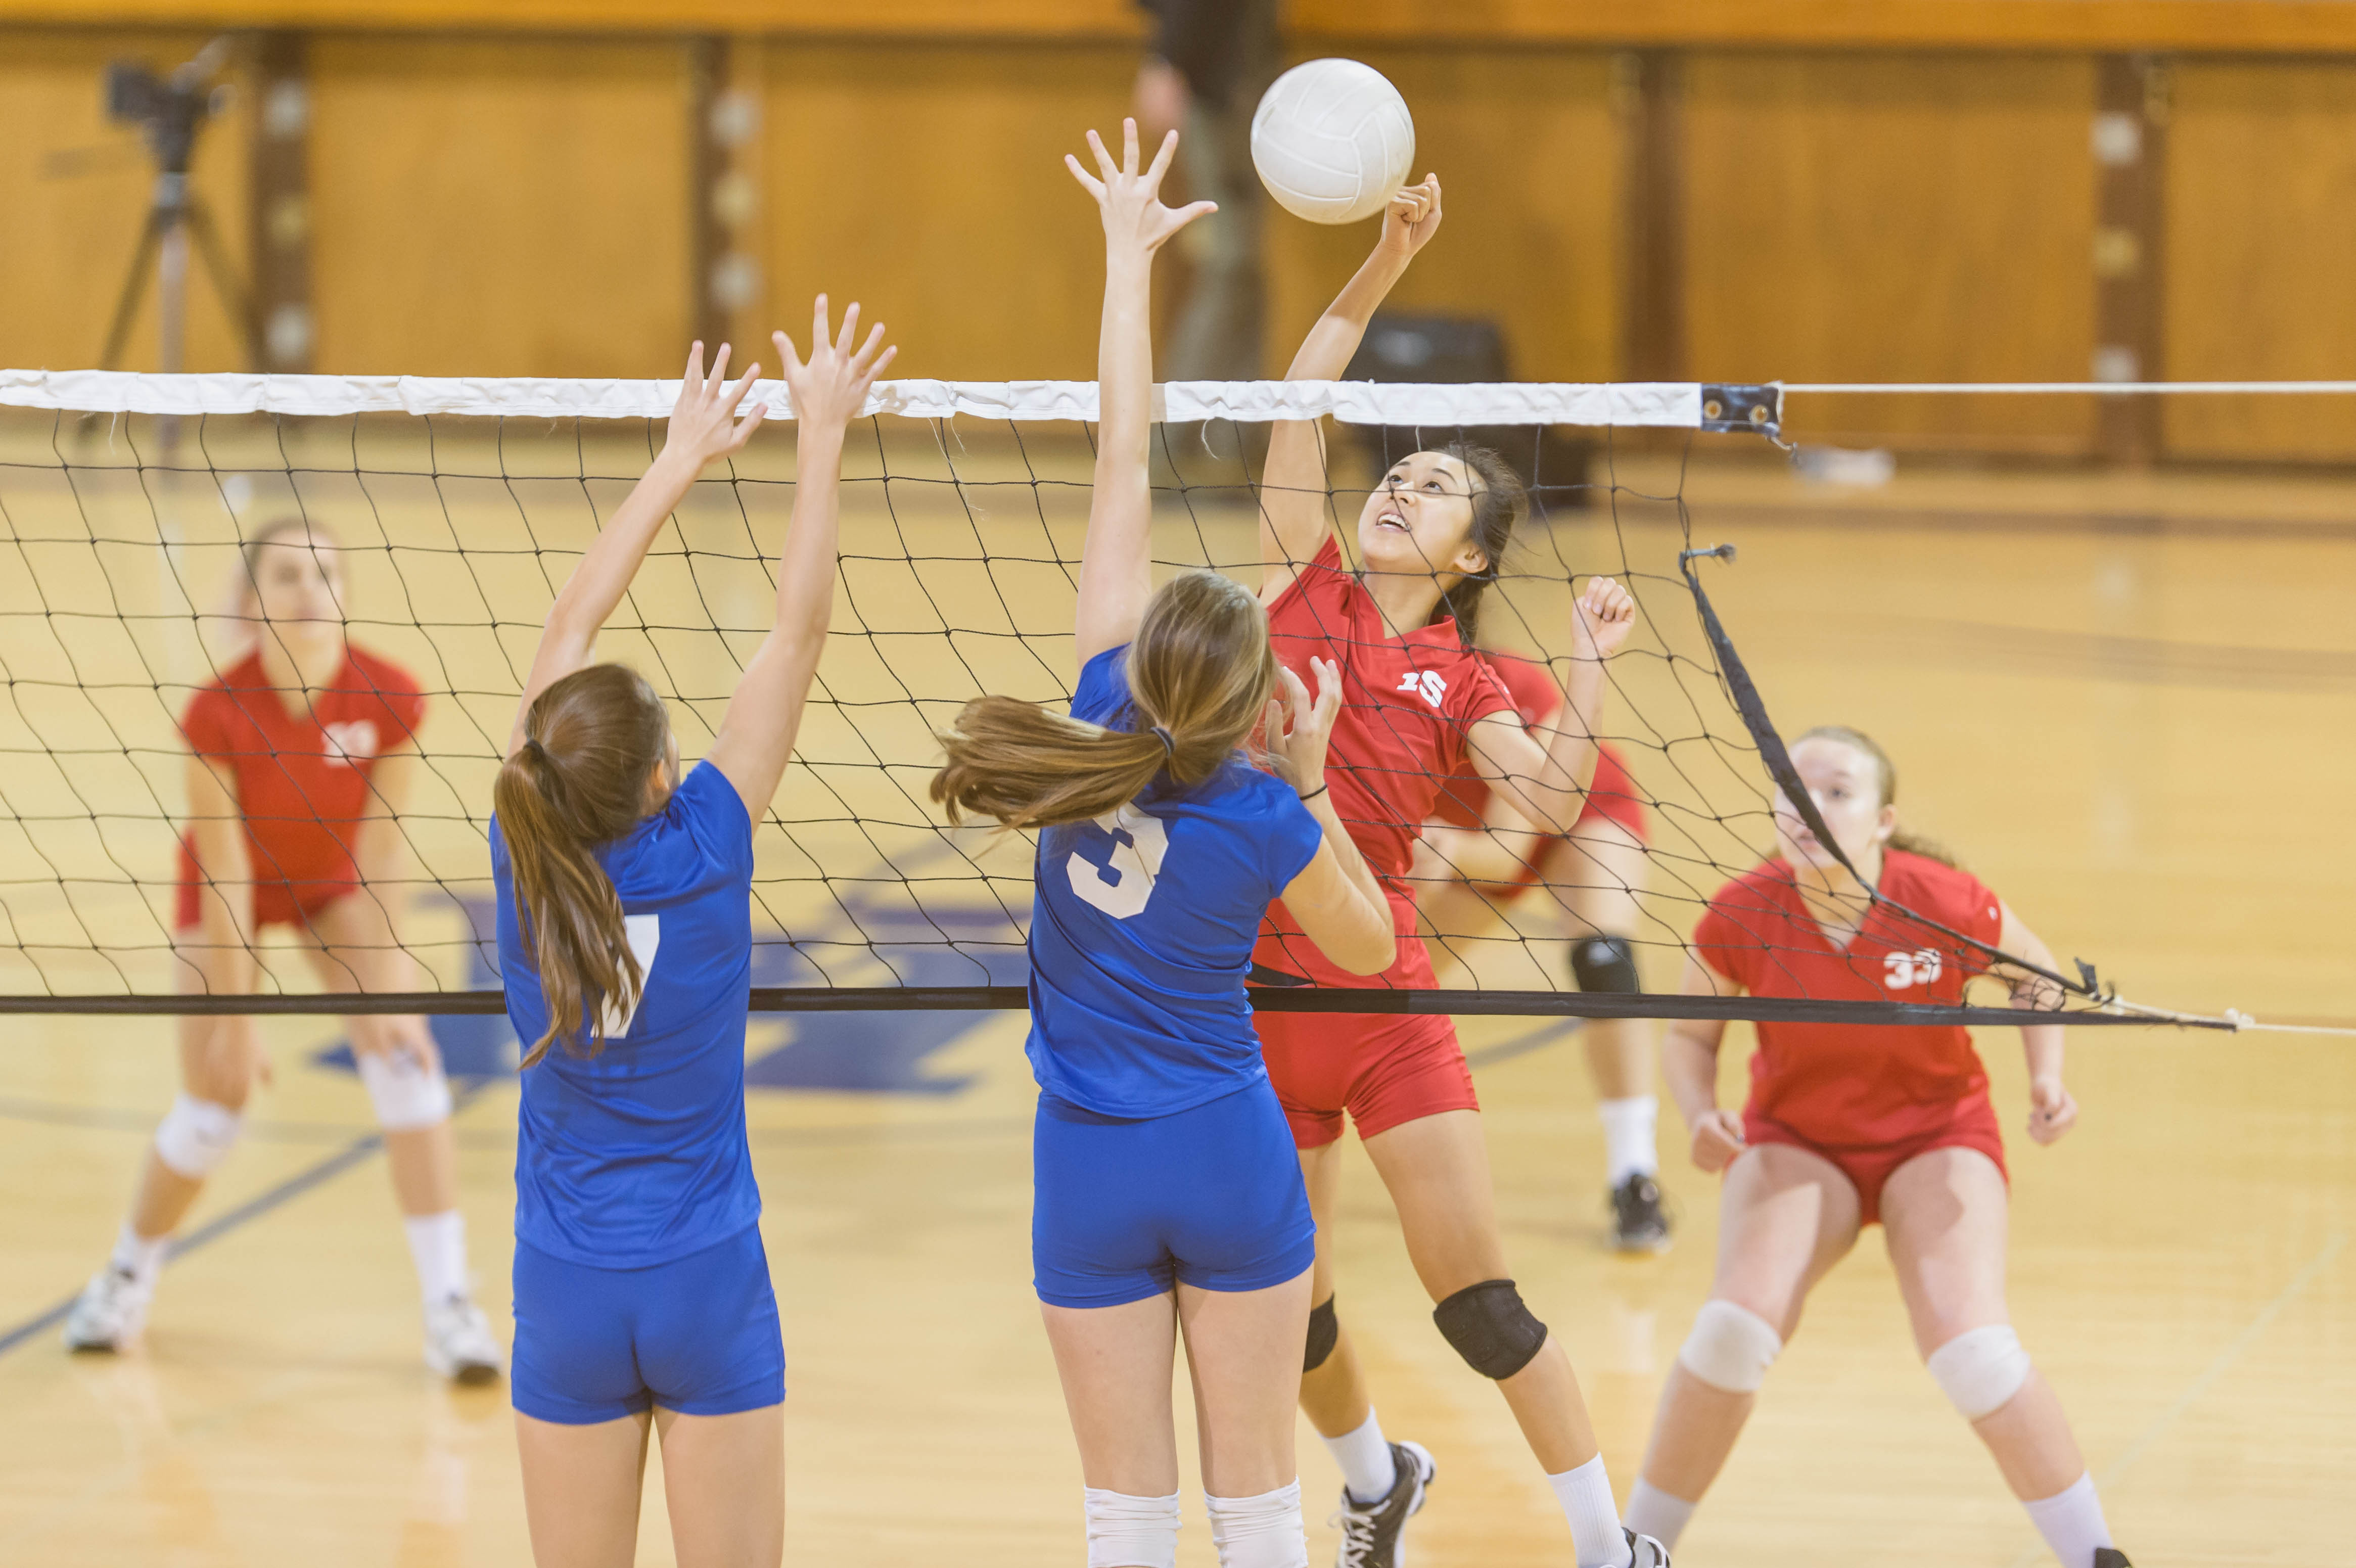 Download Stack S Summer Training Program For Volleyball By Dan Perlmutter Head Olympic Sports Perf Basketball Workouts Volleyball Tryouts Volleyball Pictures